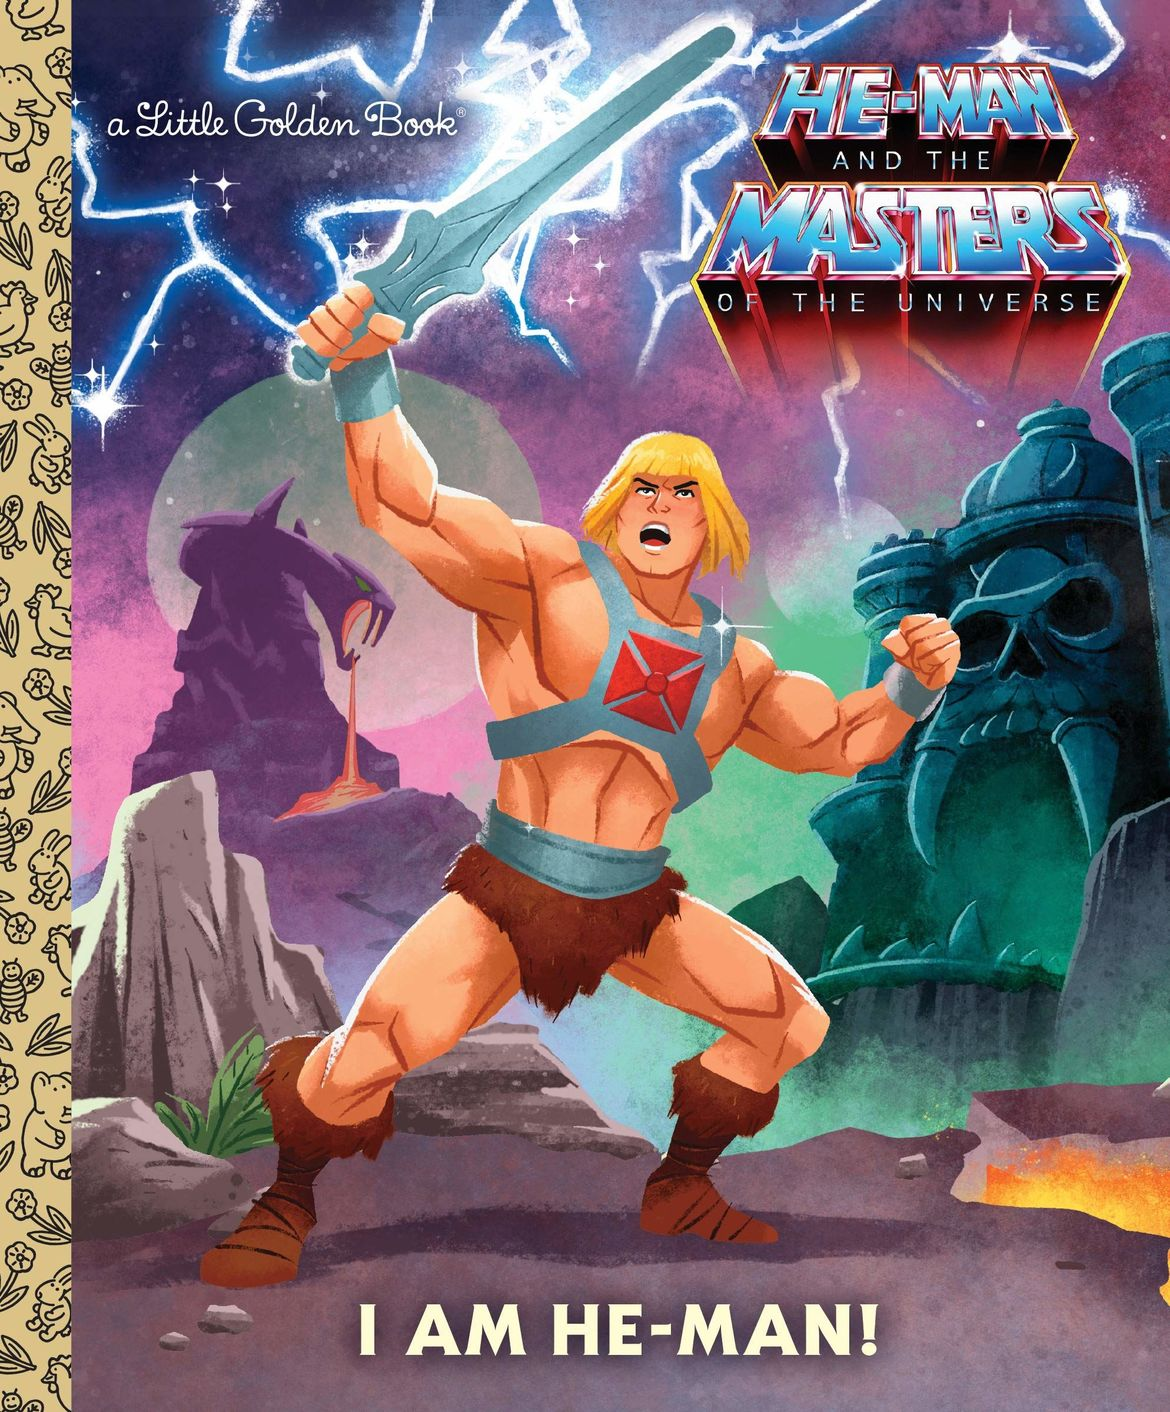 He-Man little golden book